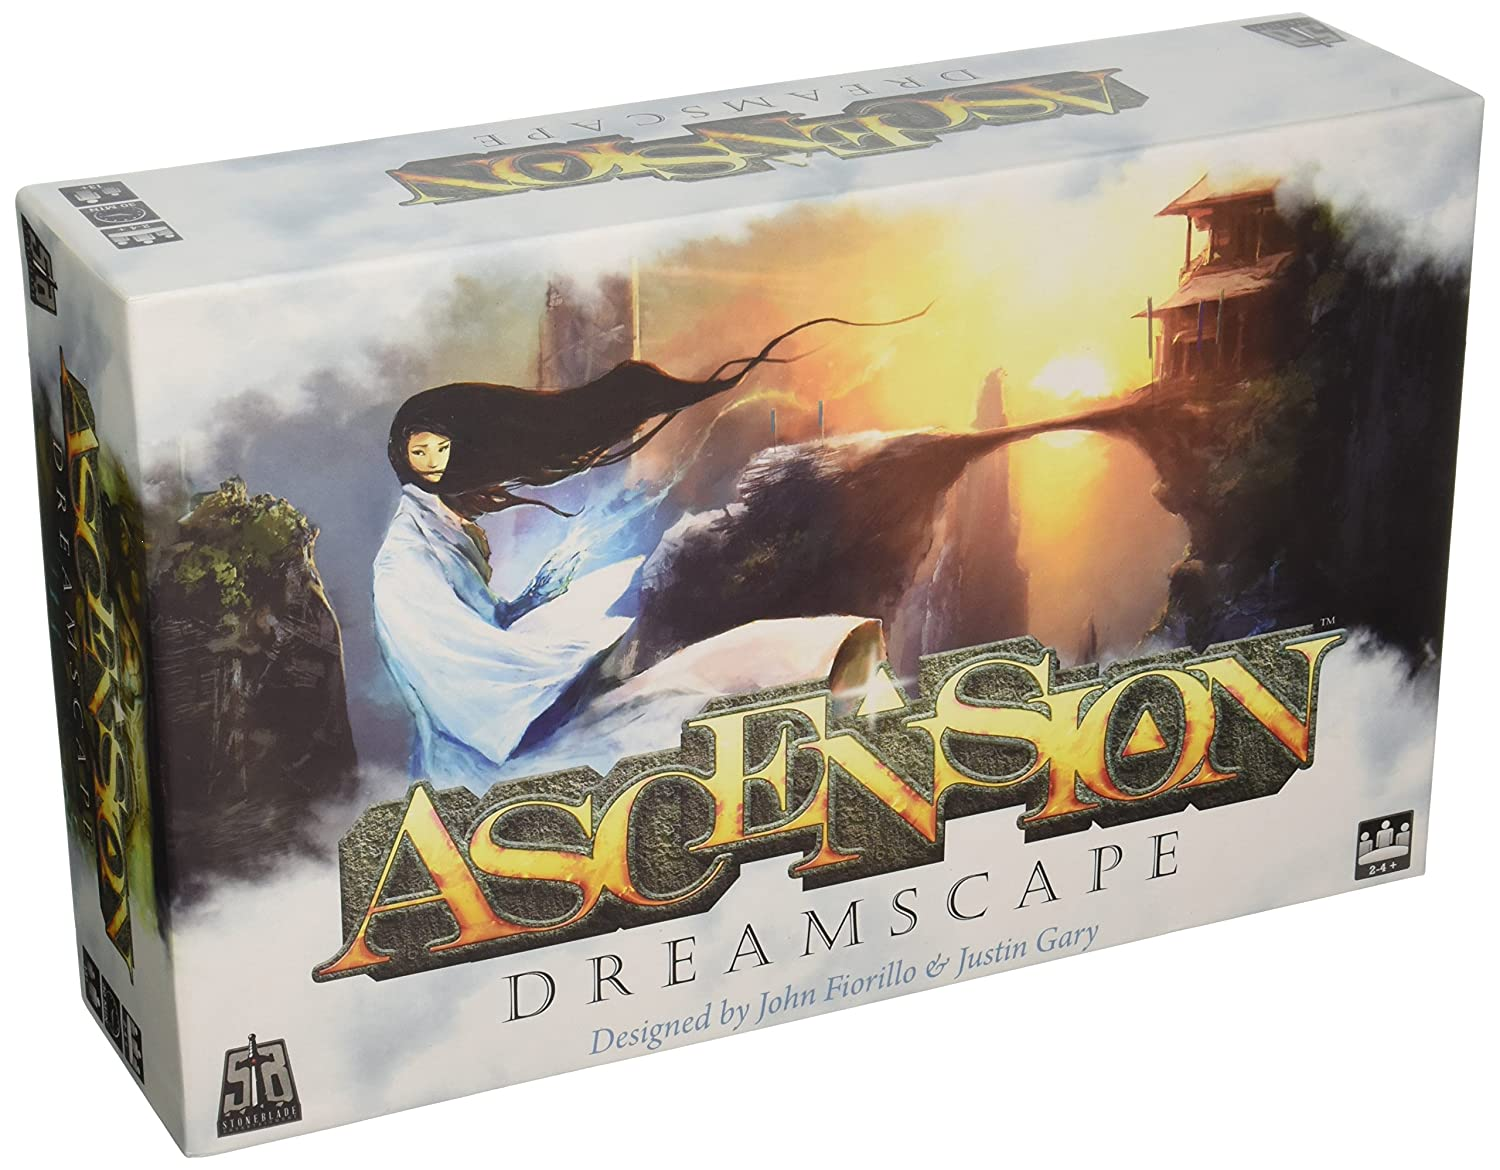 Ascension: Dreamscape - The ninth set in the Ascension f